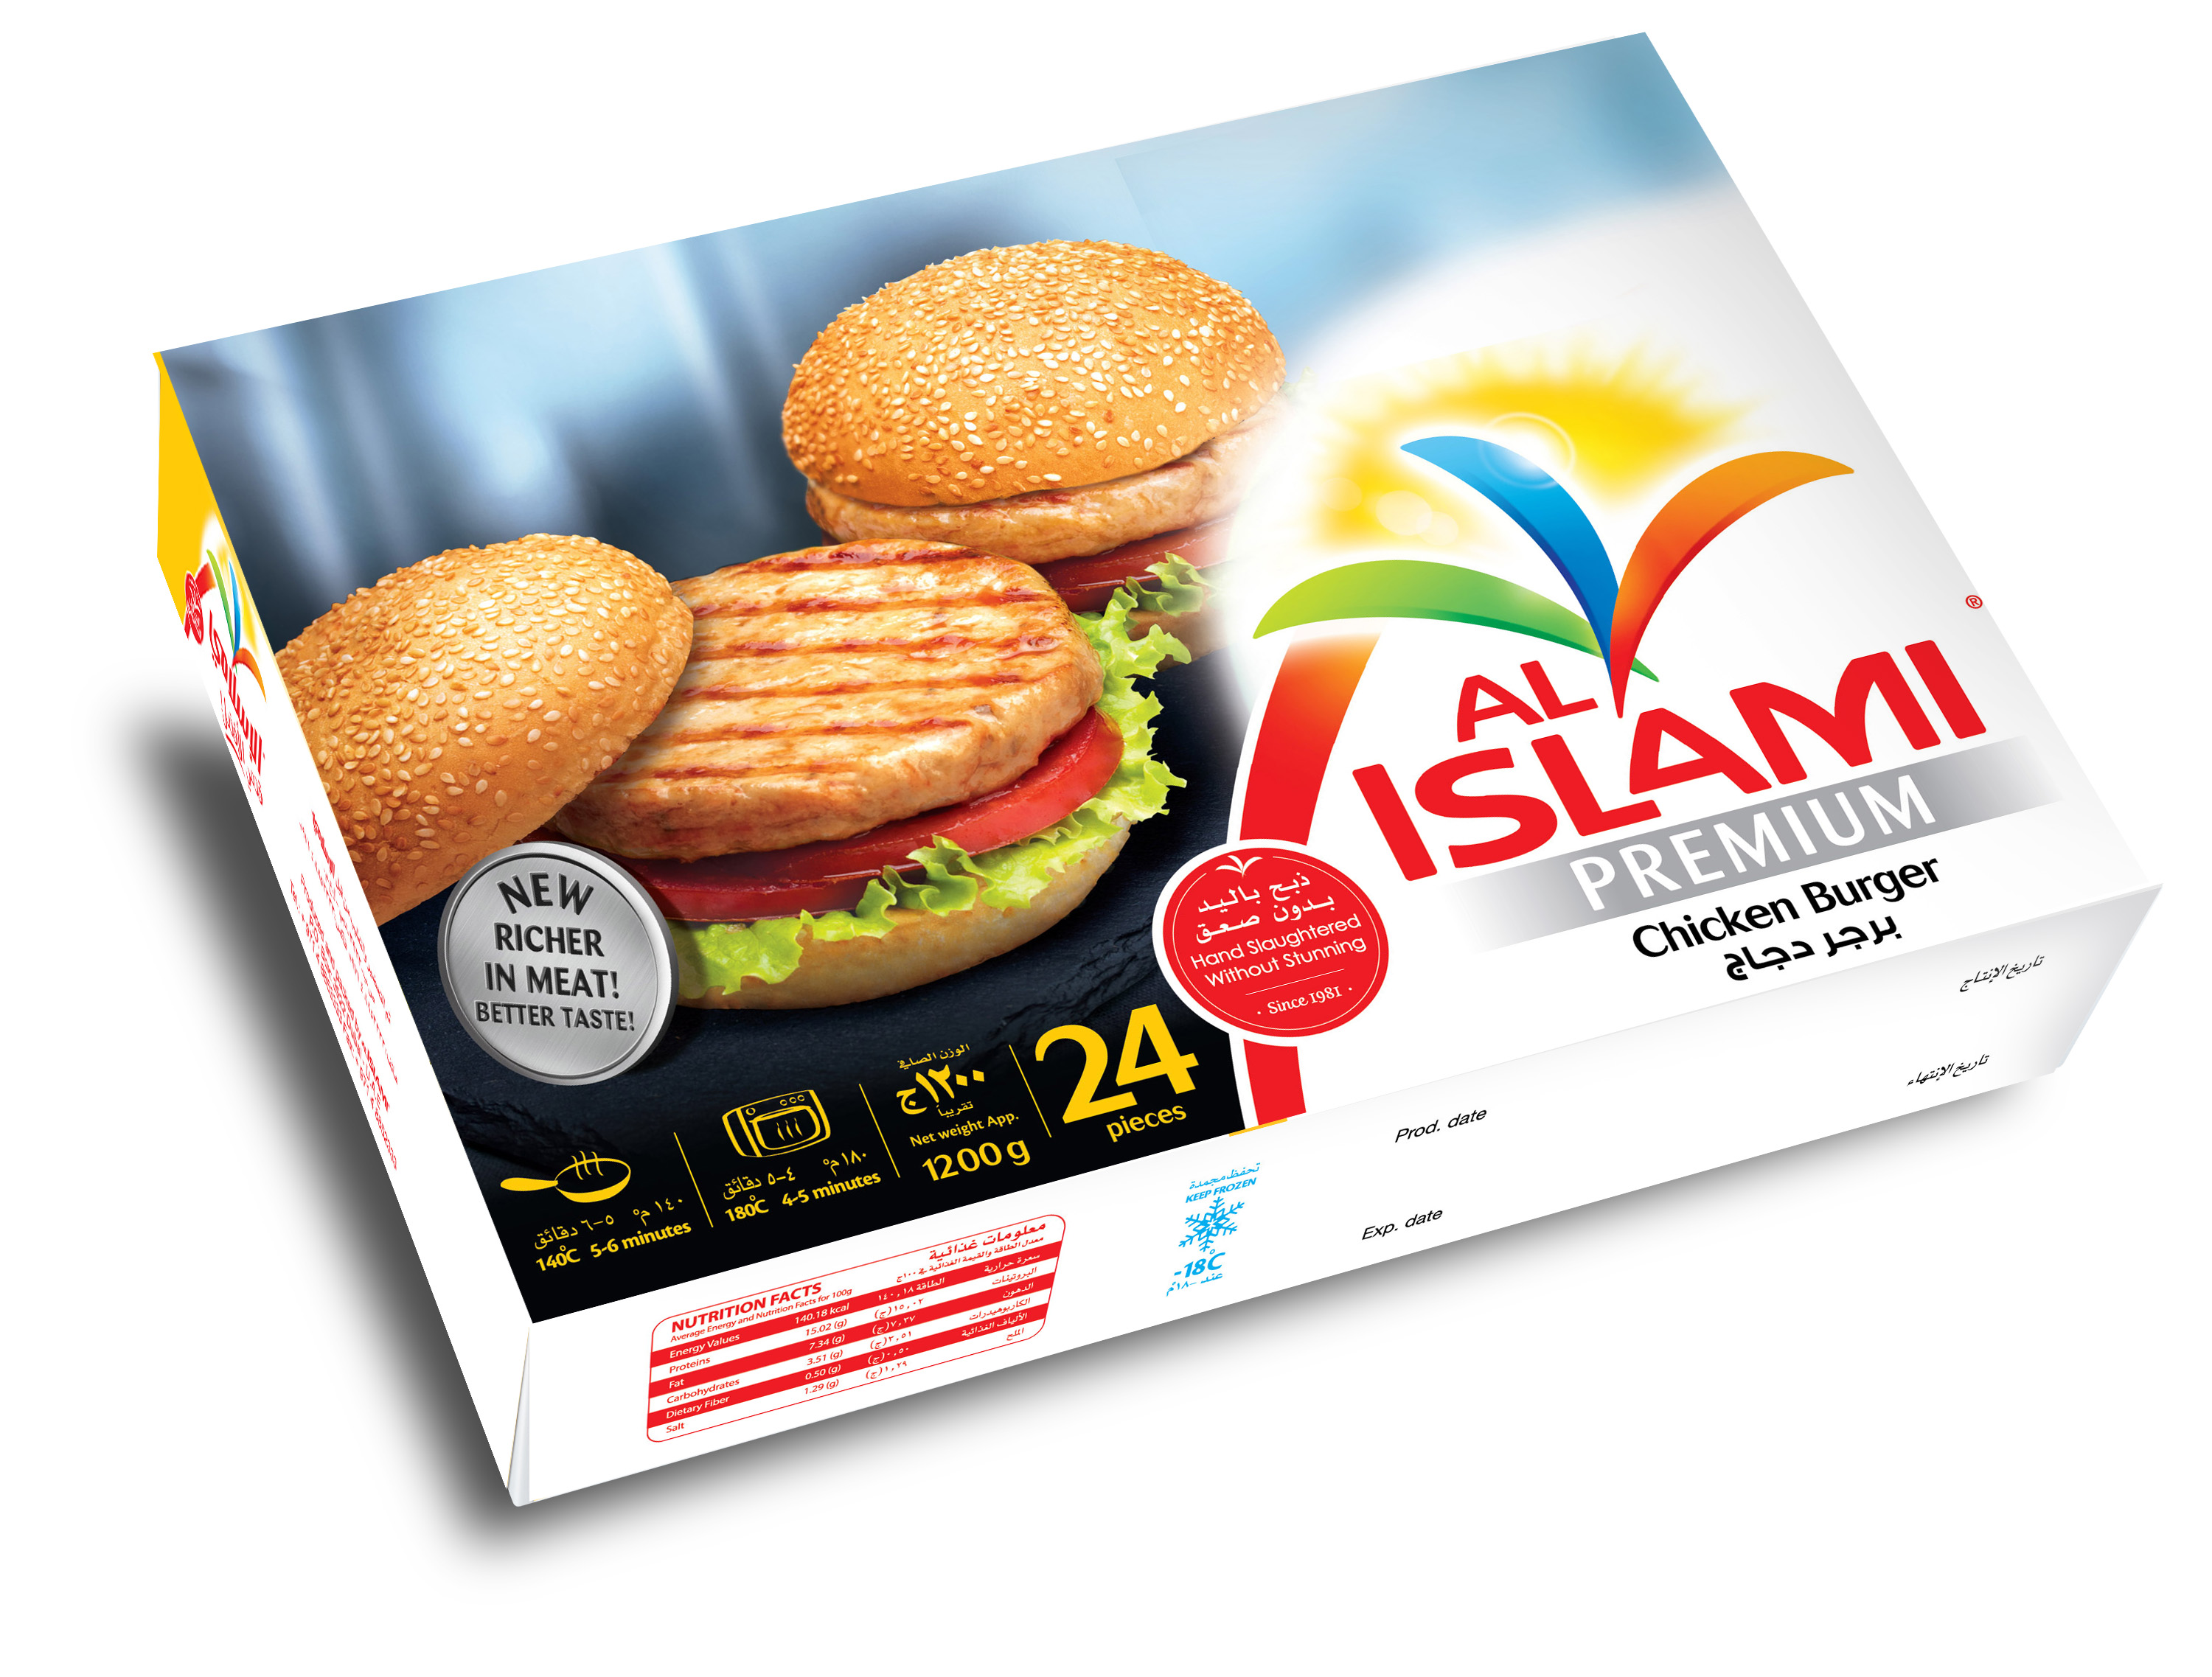 Chicken Burger Box 1200g Image